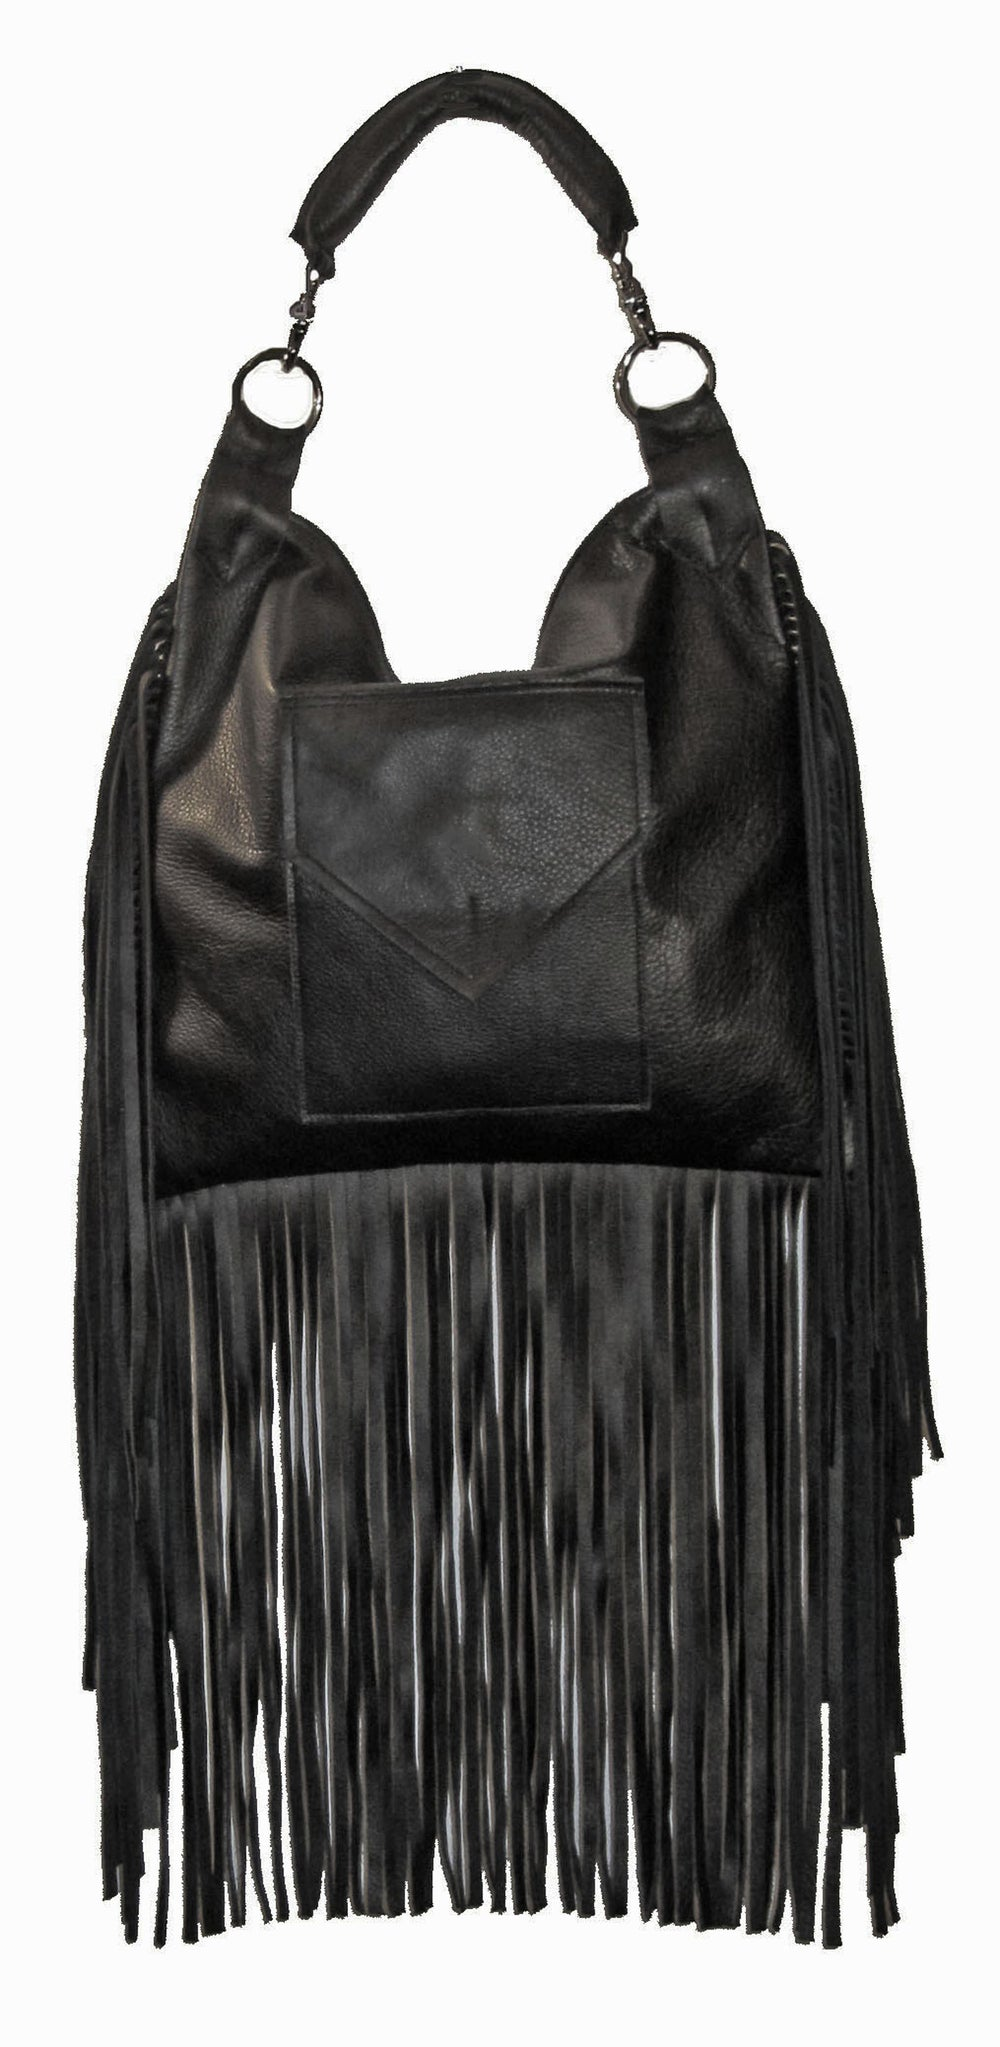 Image of Freebird Fringed Bag